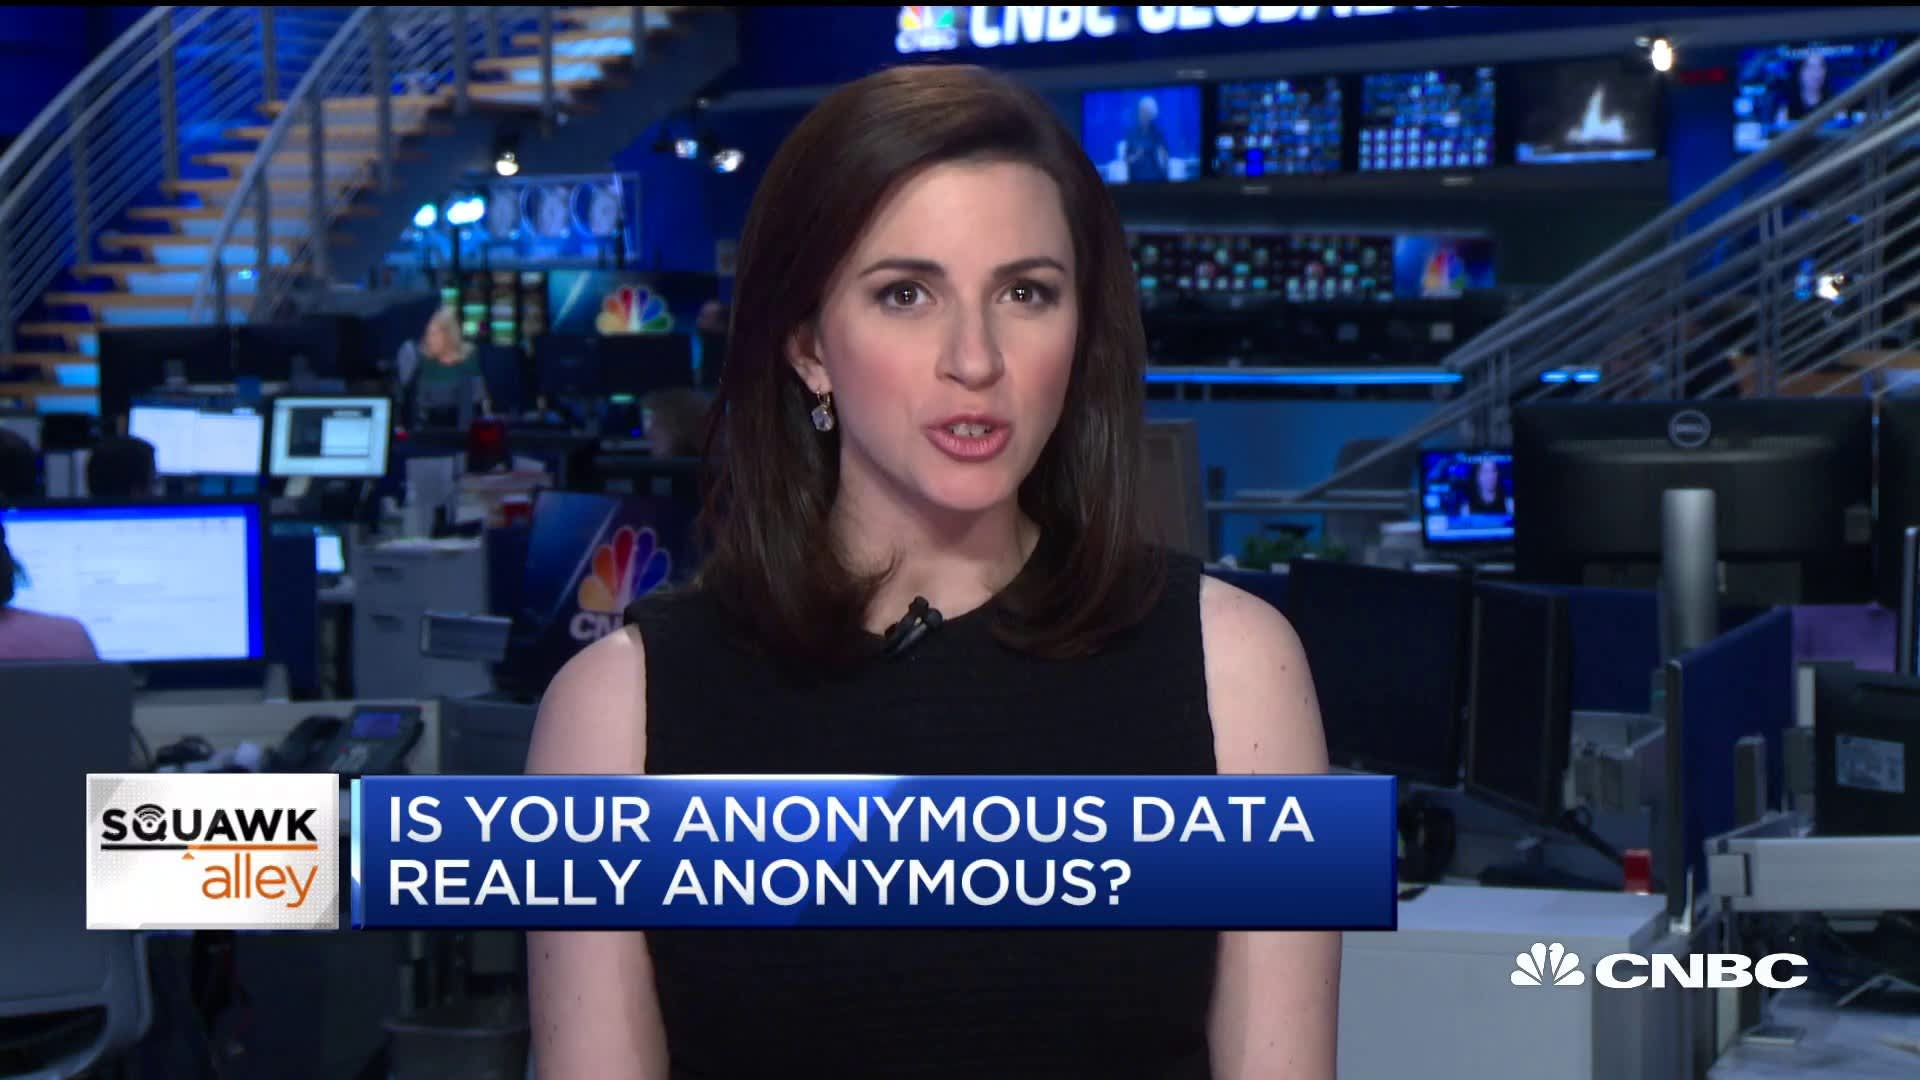 'Anonymous' data might not be so anonymous, study shows